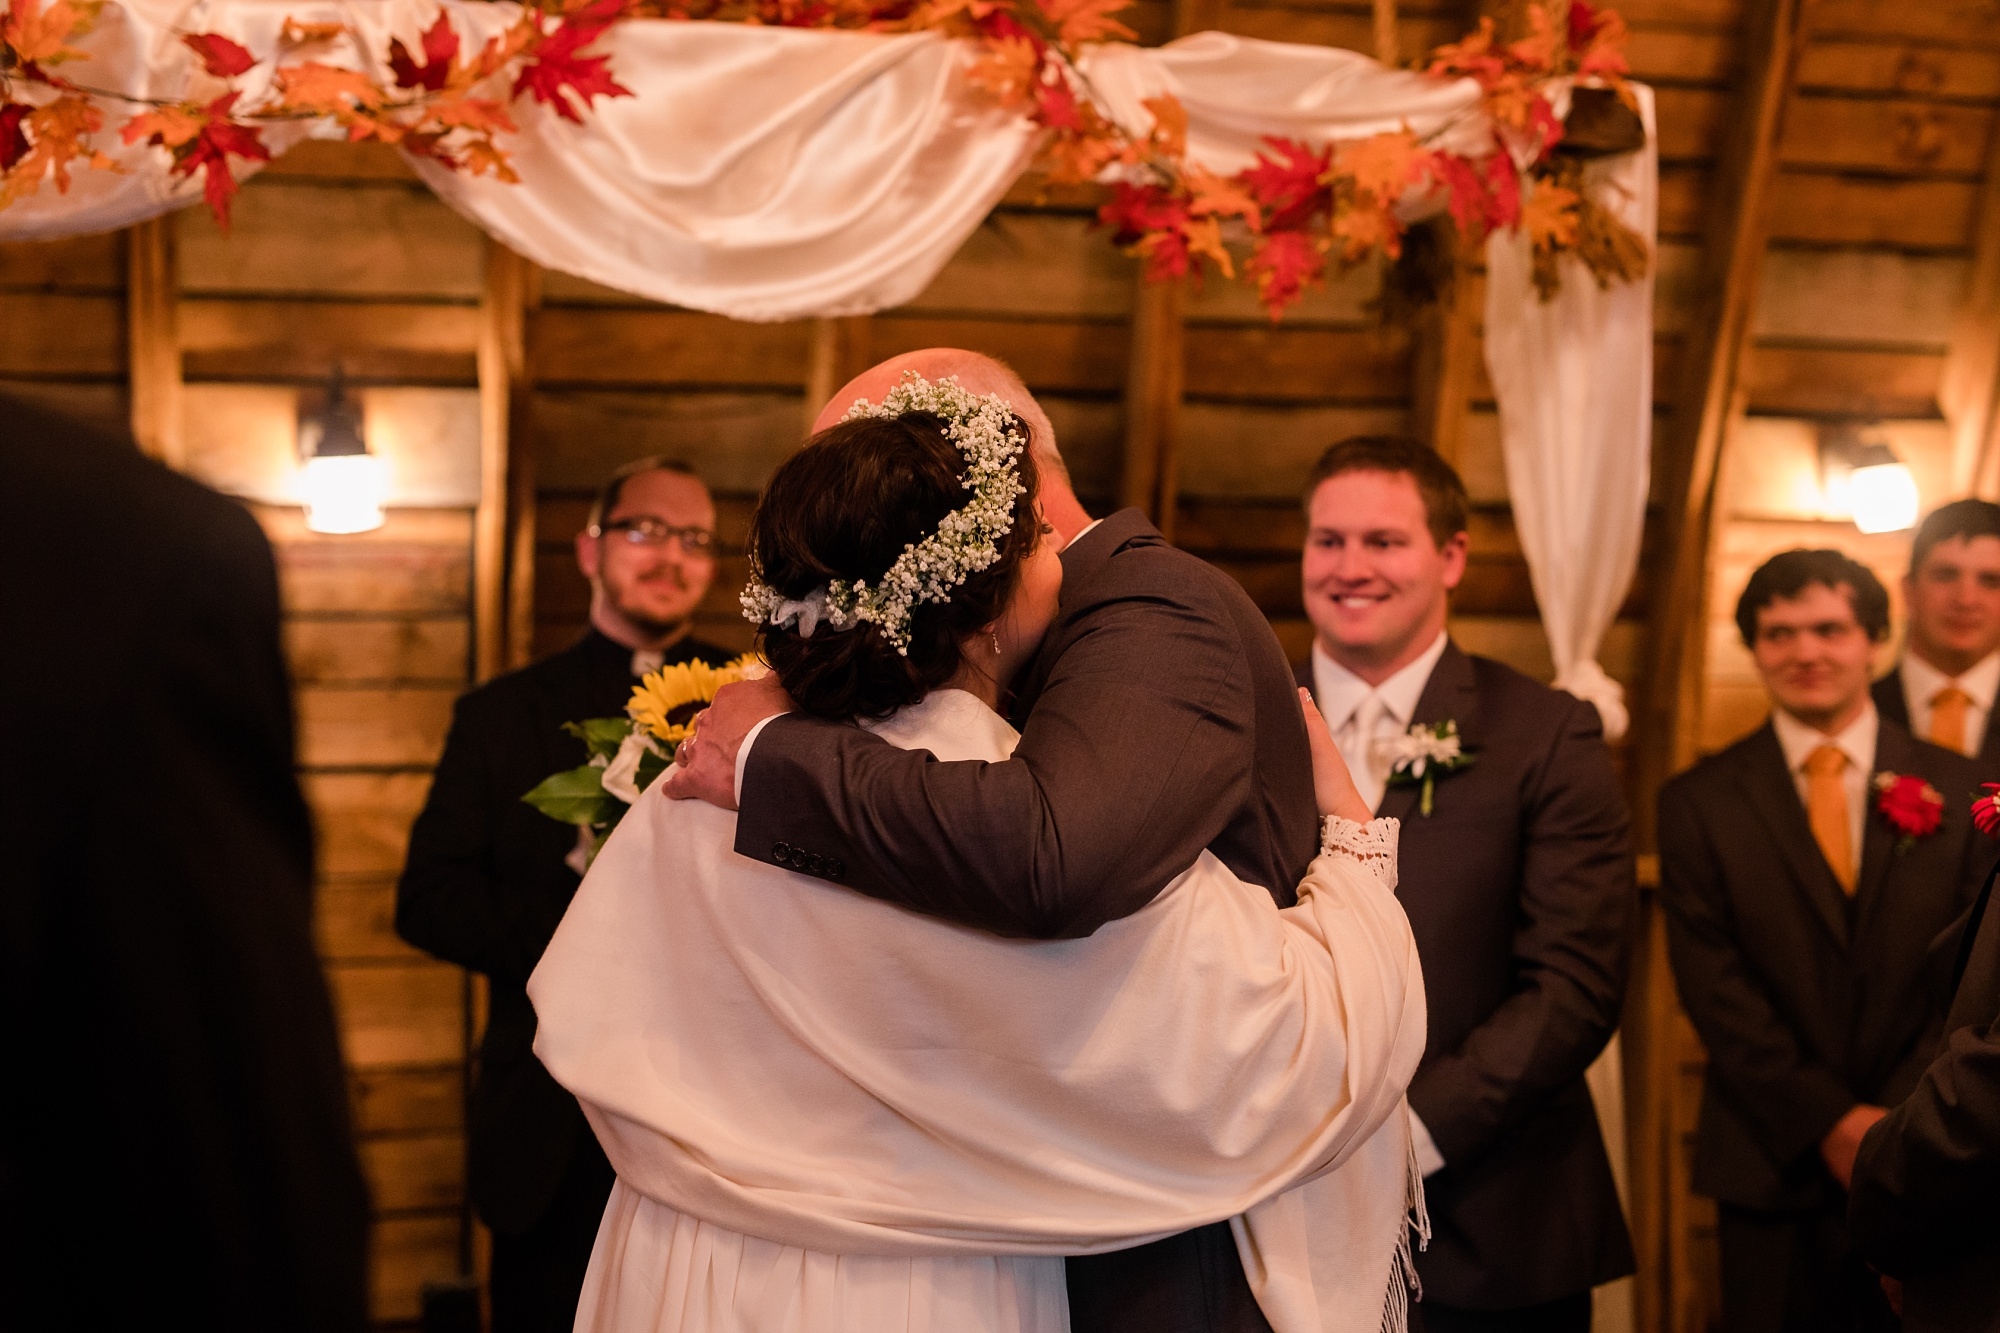 Amber Langerud_Rustic Oaks, MN winter barn wedding_0545.jpg